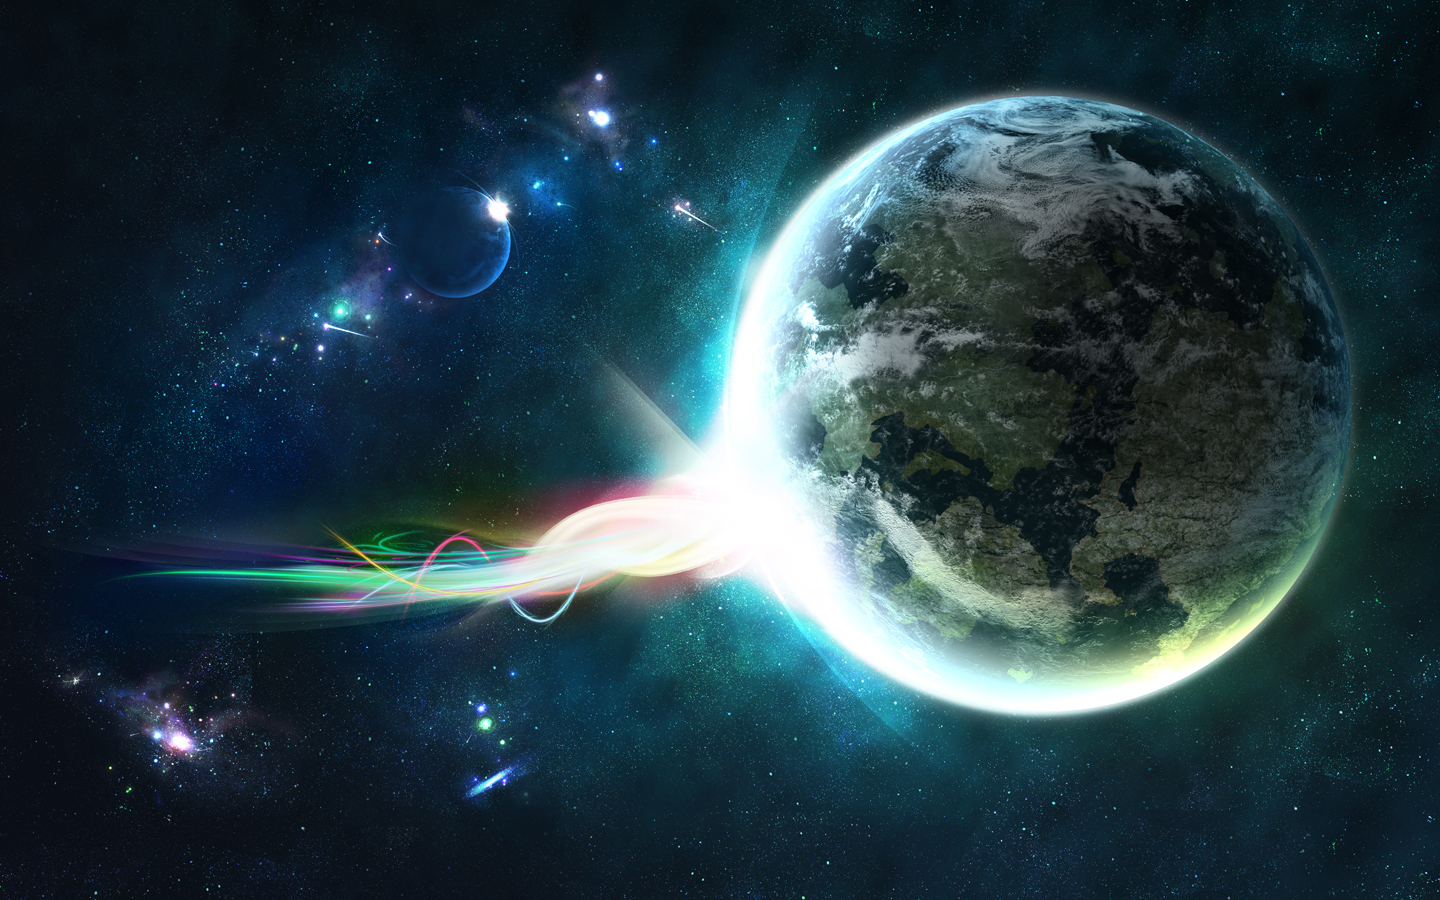 Space/Fantasy Wallpaper Set 4 « Awesome Wallpapers